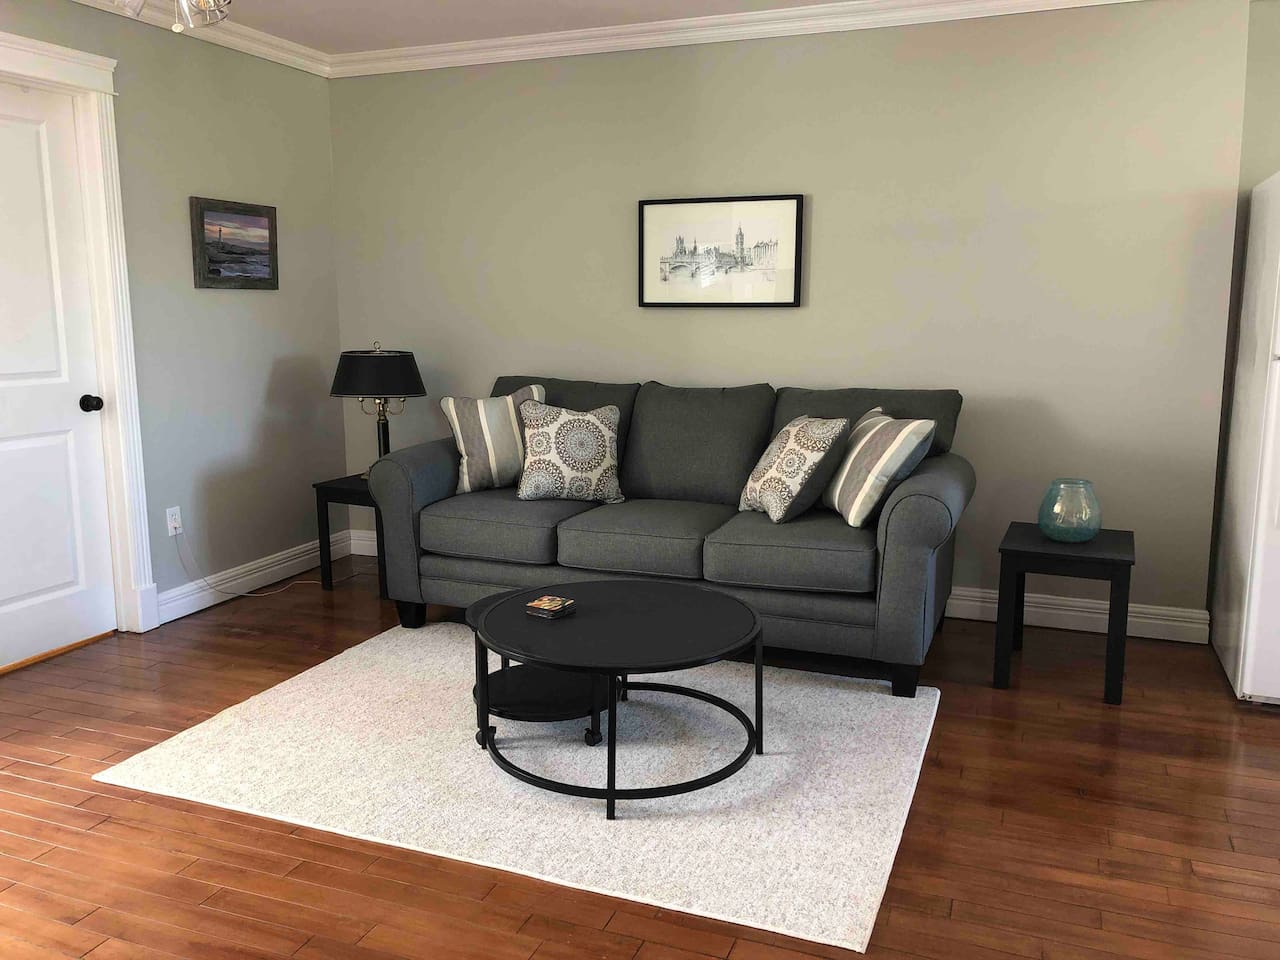 Spacious living room with nesting coffee tables and TV with lots of channels including Netflix.